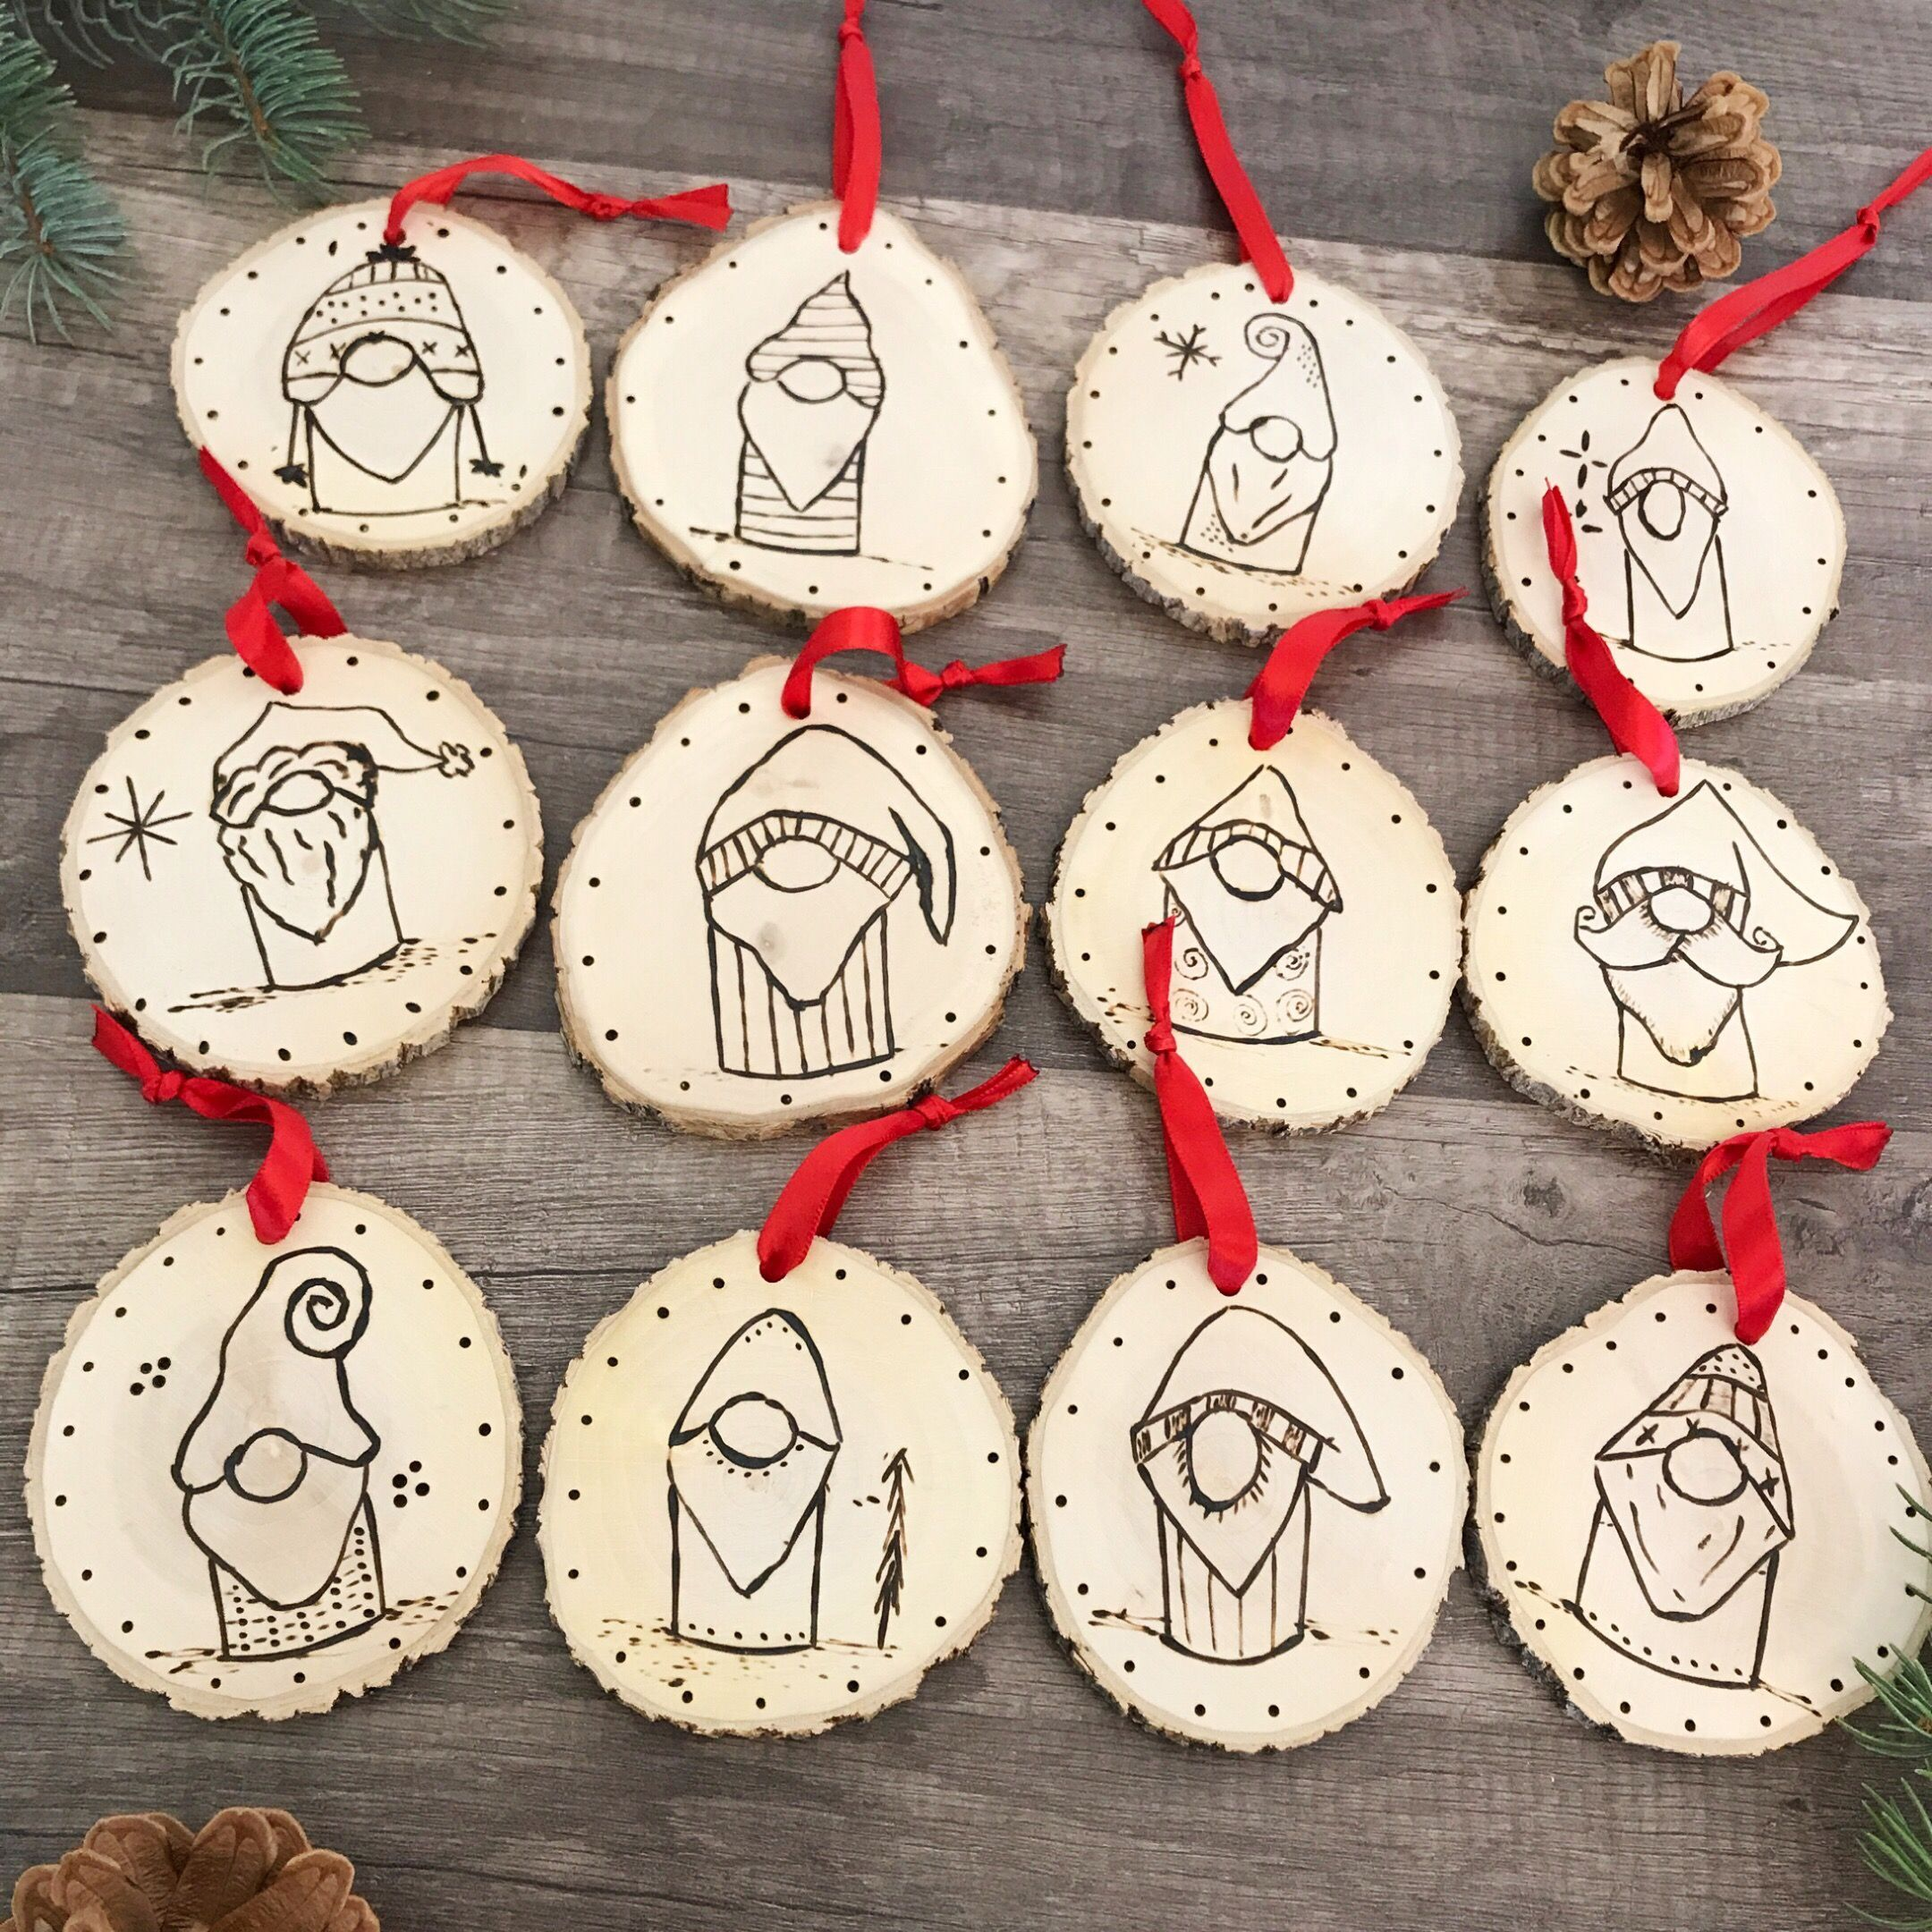 Wood Slice Gnome Ornaments Scandinavian Christmas Decor Tomte Gnome Ornaments Hand Burned Wo Wood Slice Ornament Wood Christmas Ornaments Rustic Ornaments